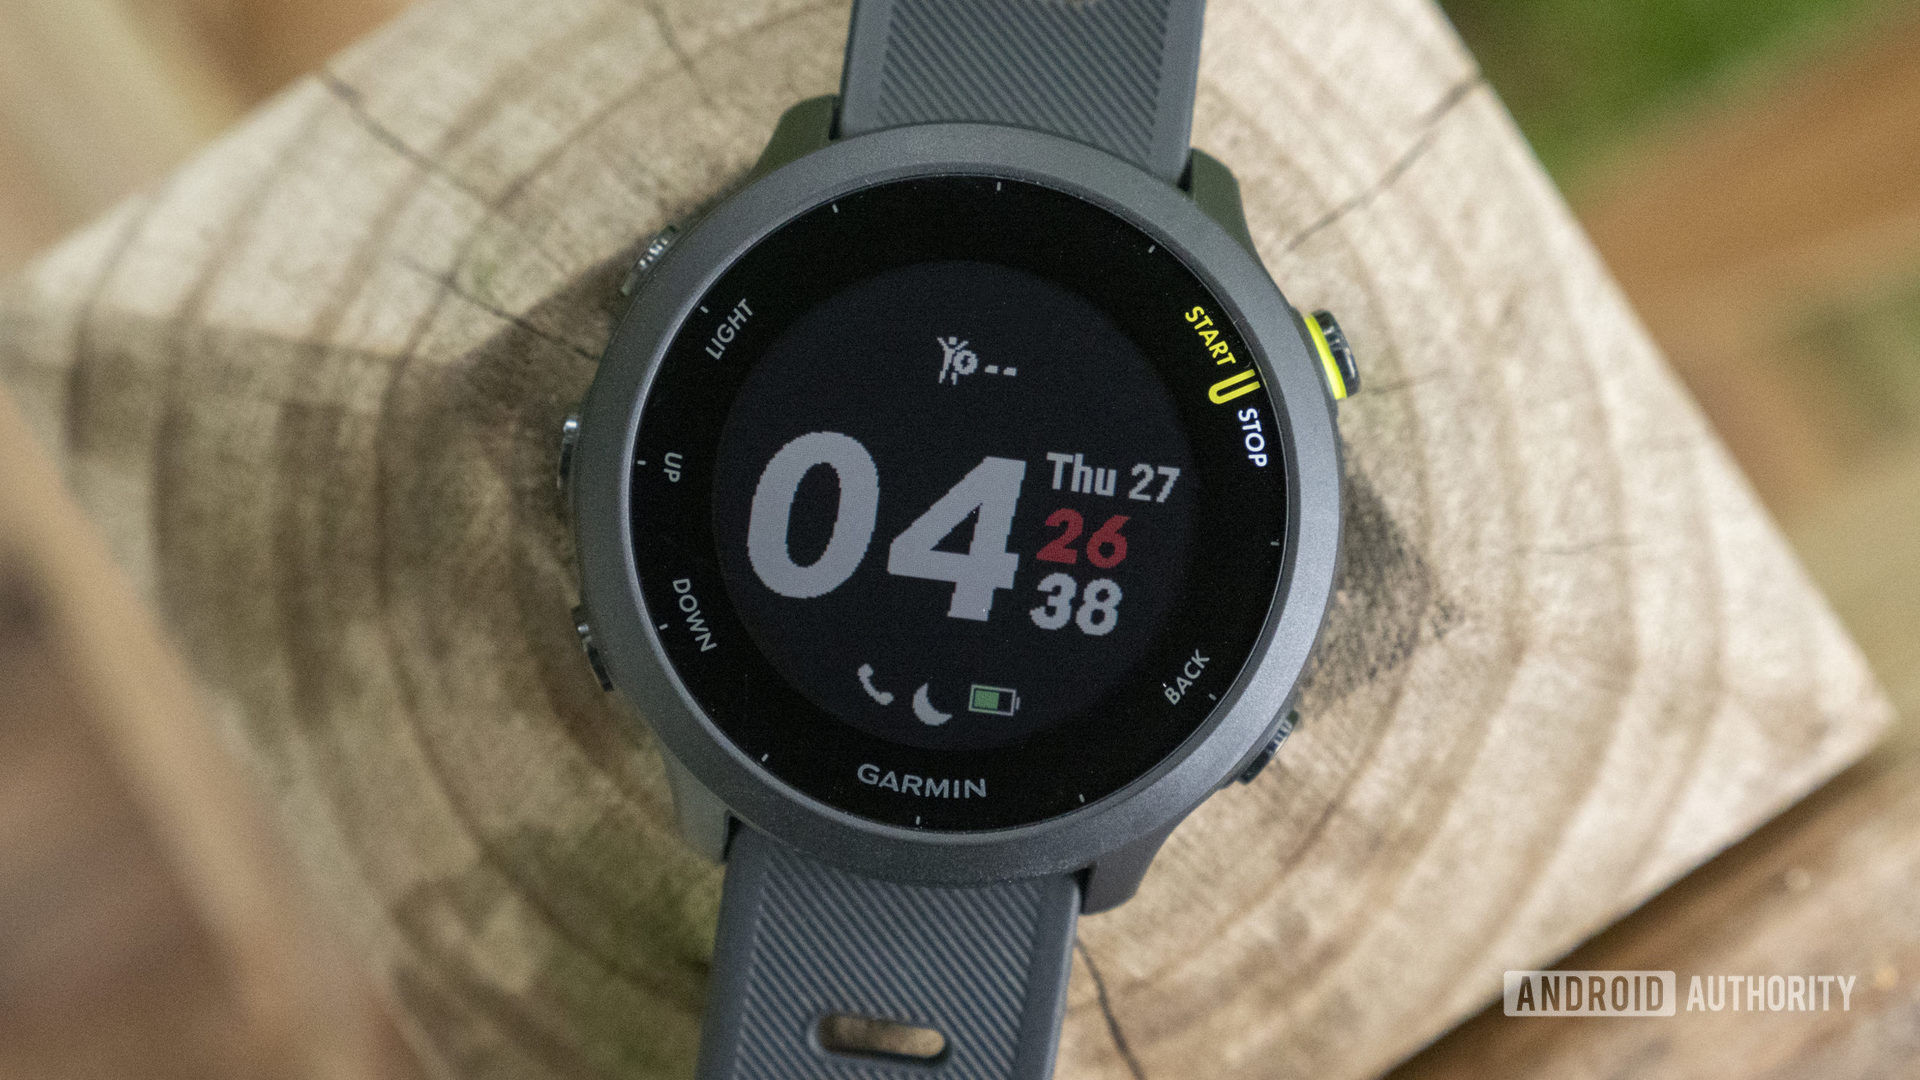 Garmin Forerunner 55 review watch face display on table 1